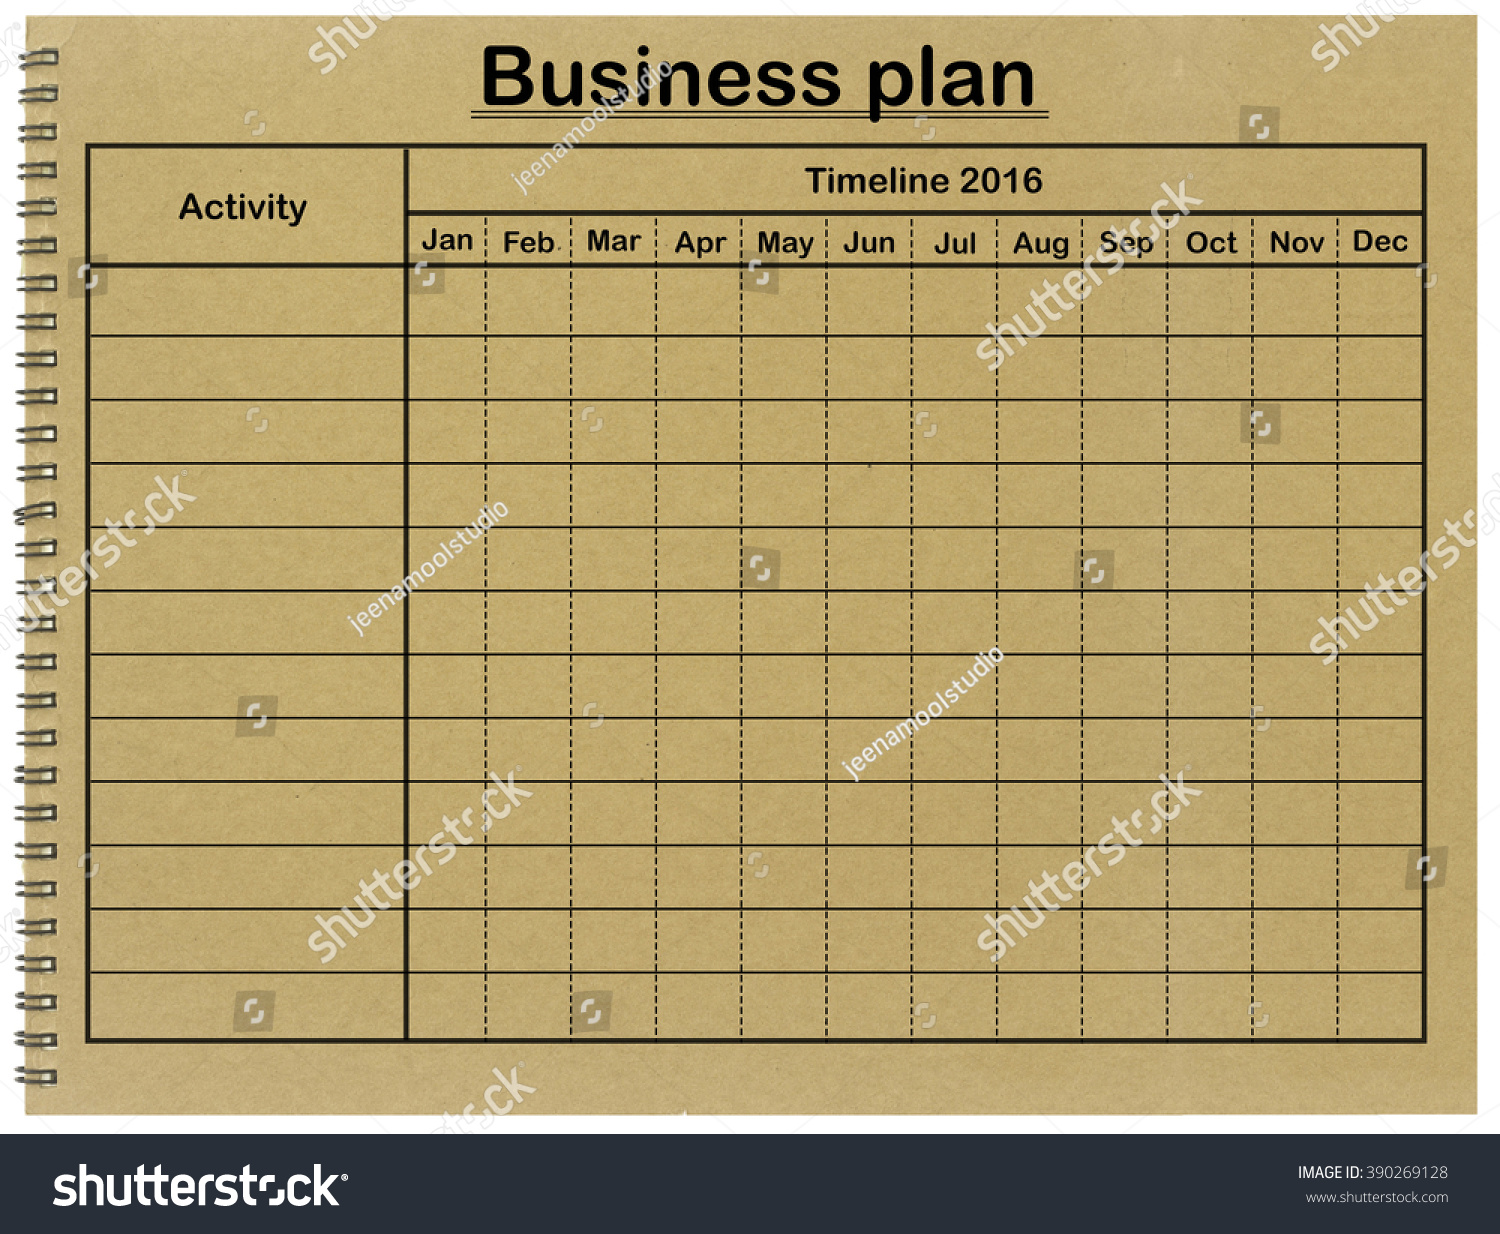 royalty free business plan grid timetable on 390269128 stock photo